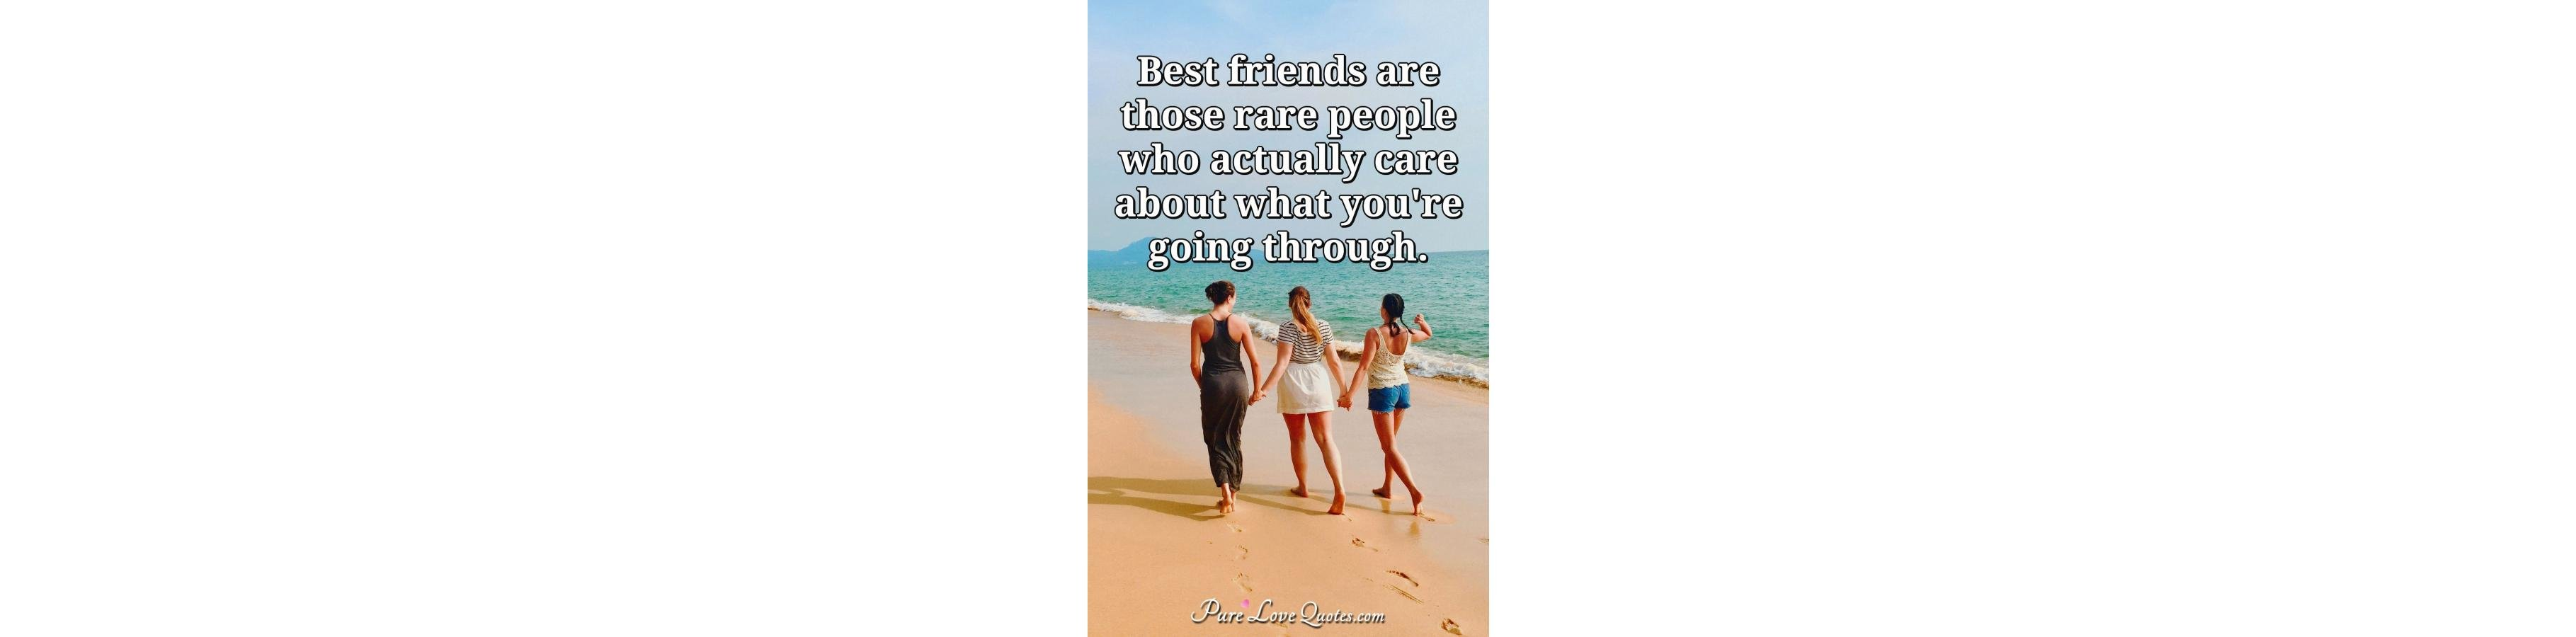 Quotes About Love Relationships: Best Friends Are Those Rare People Who Actually Care About